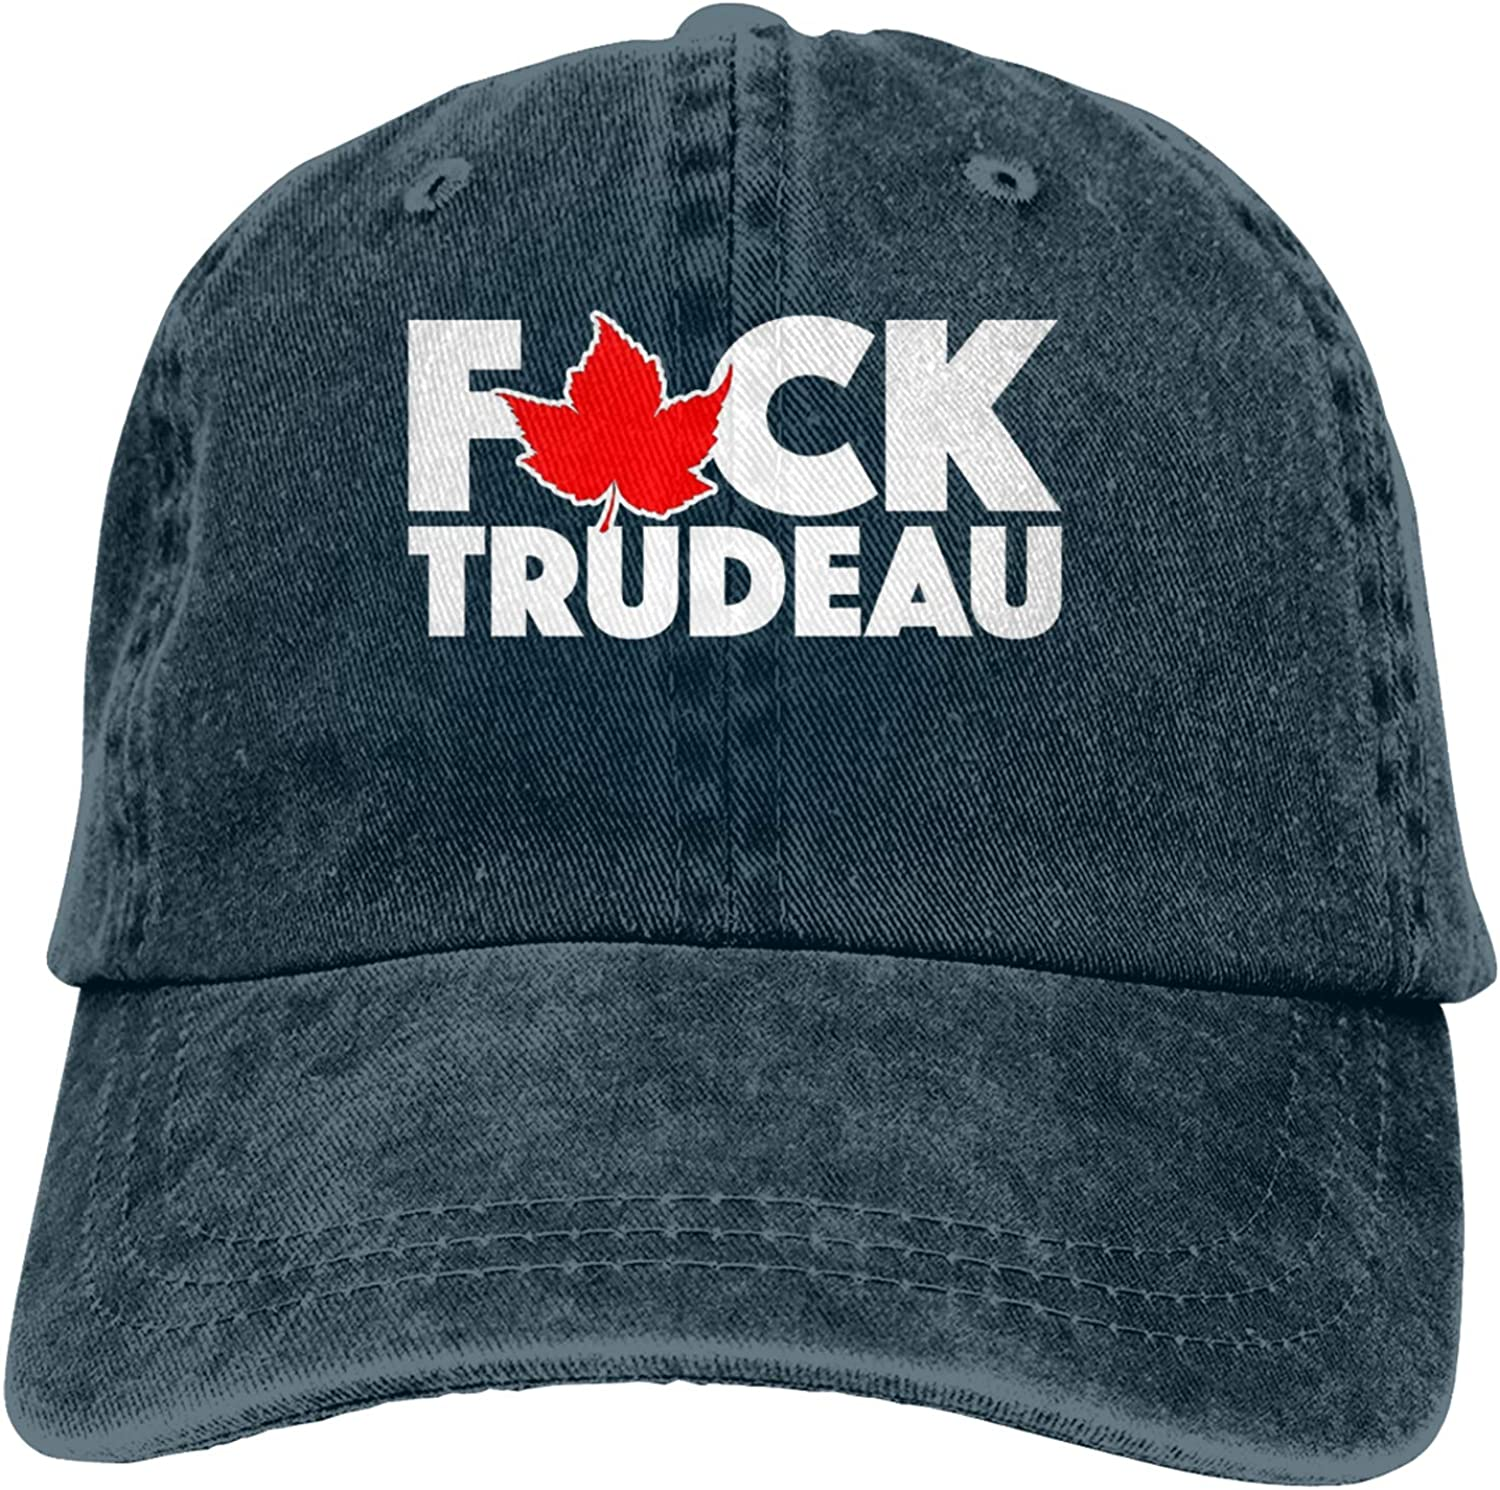 Vintage Adjustable Baseball Caps Fu-ck Trudeau Unisex Vintage Dad Hat